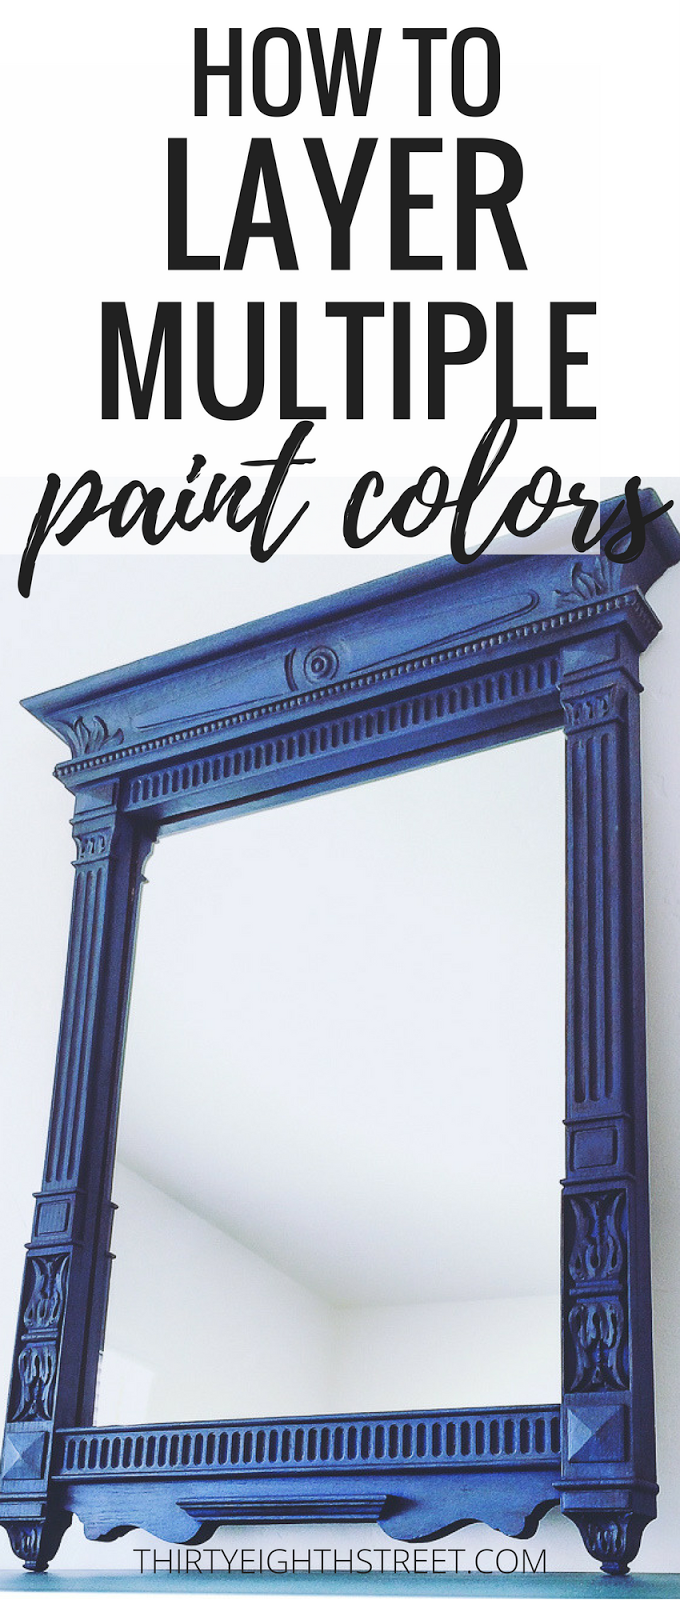 painted furniture, painting furniture, diy furniture, painting techniques, furniture painting, layering paint, blue mirror, painted mirror